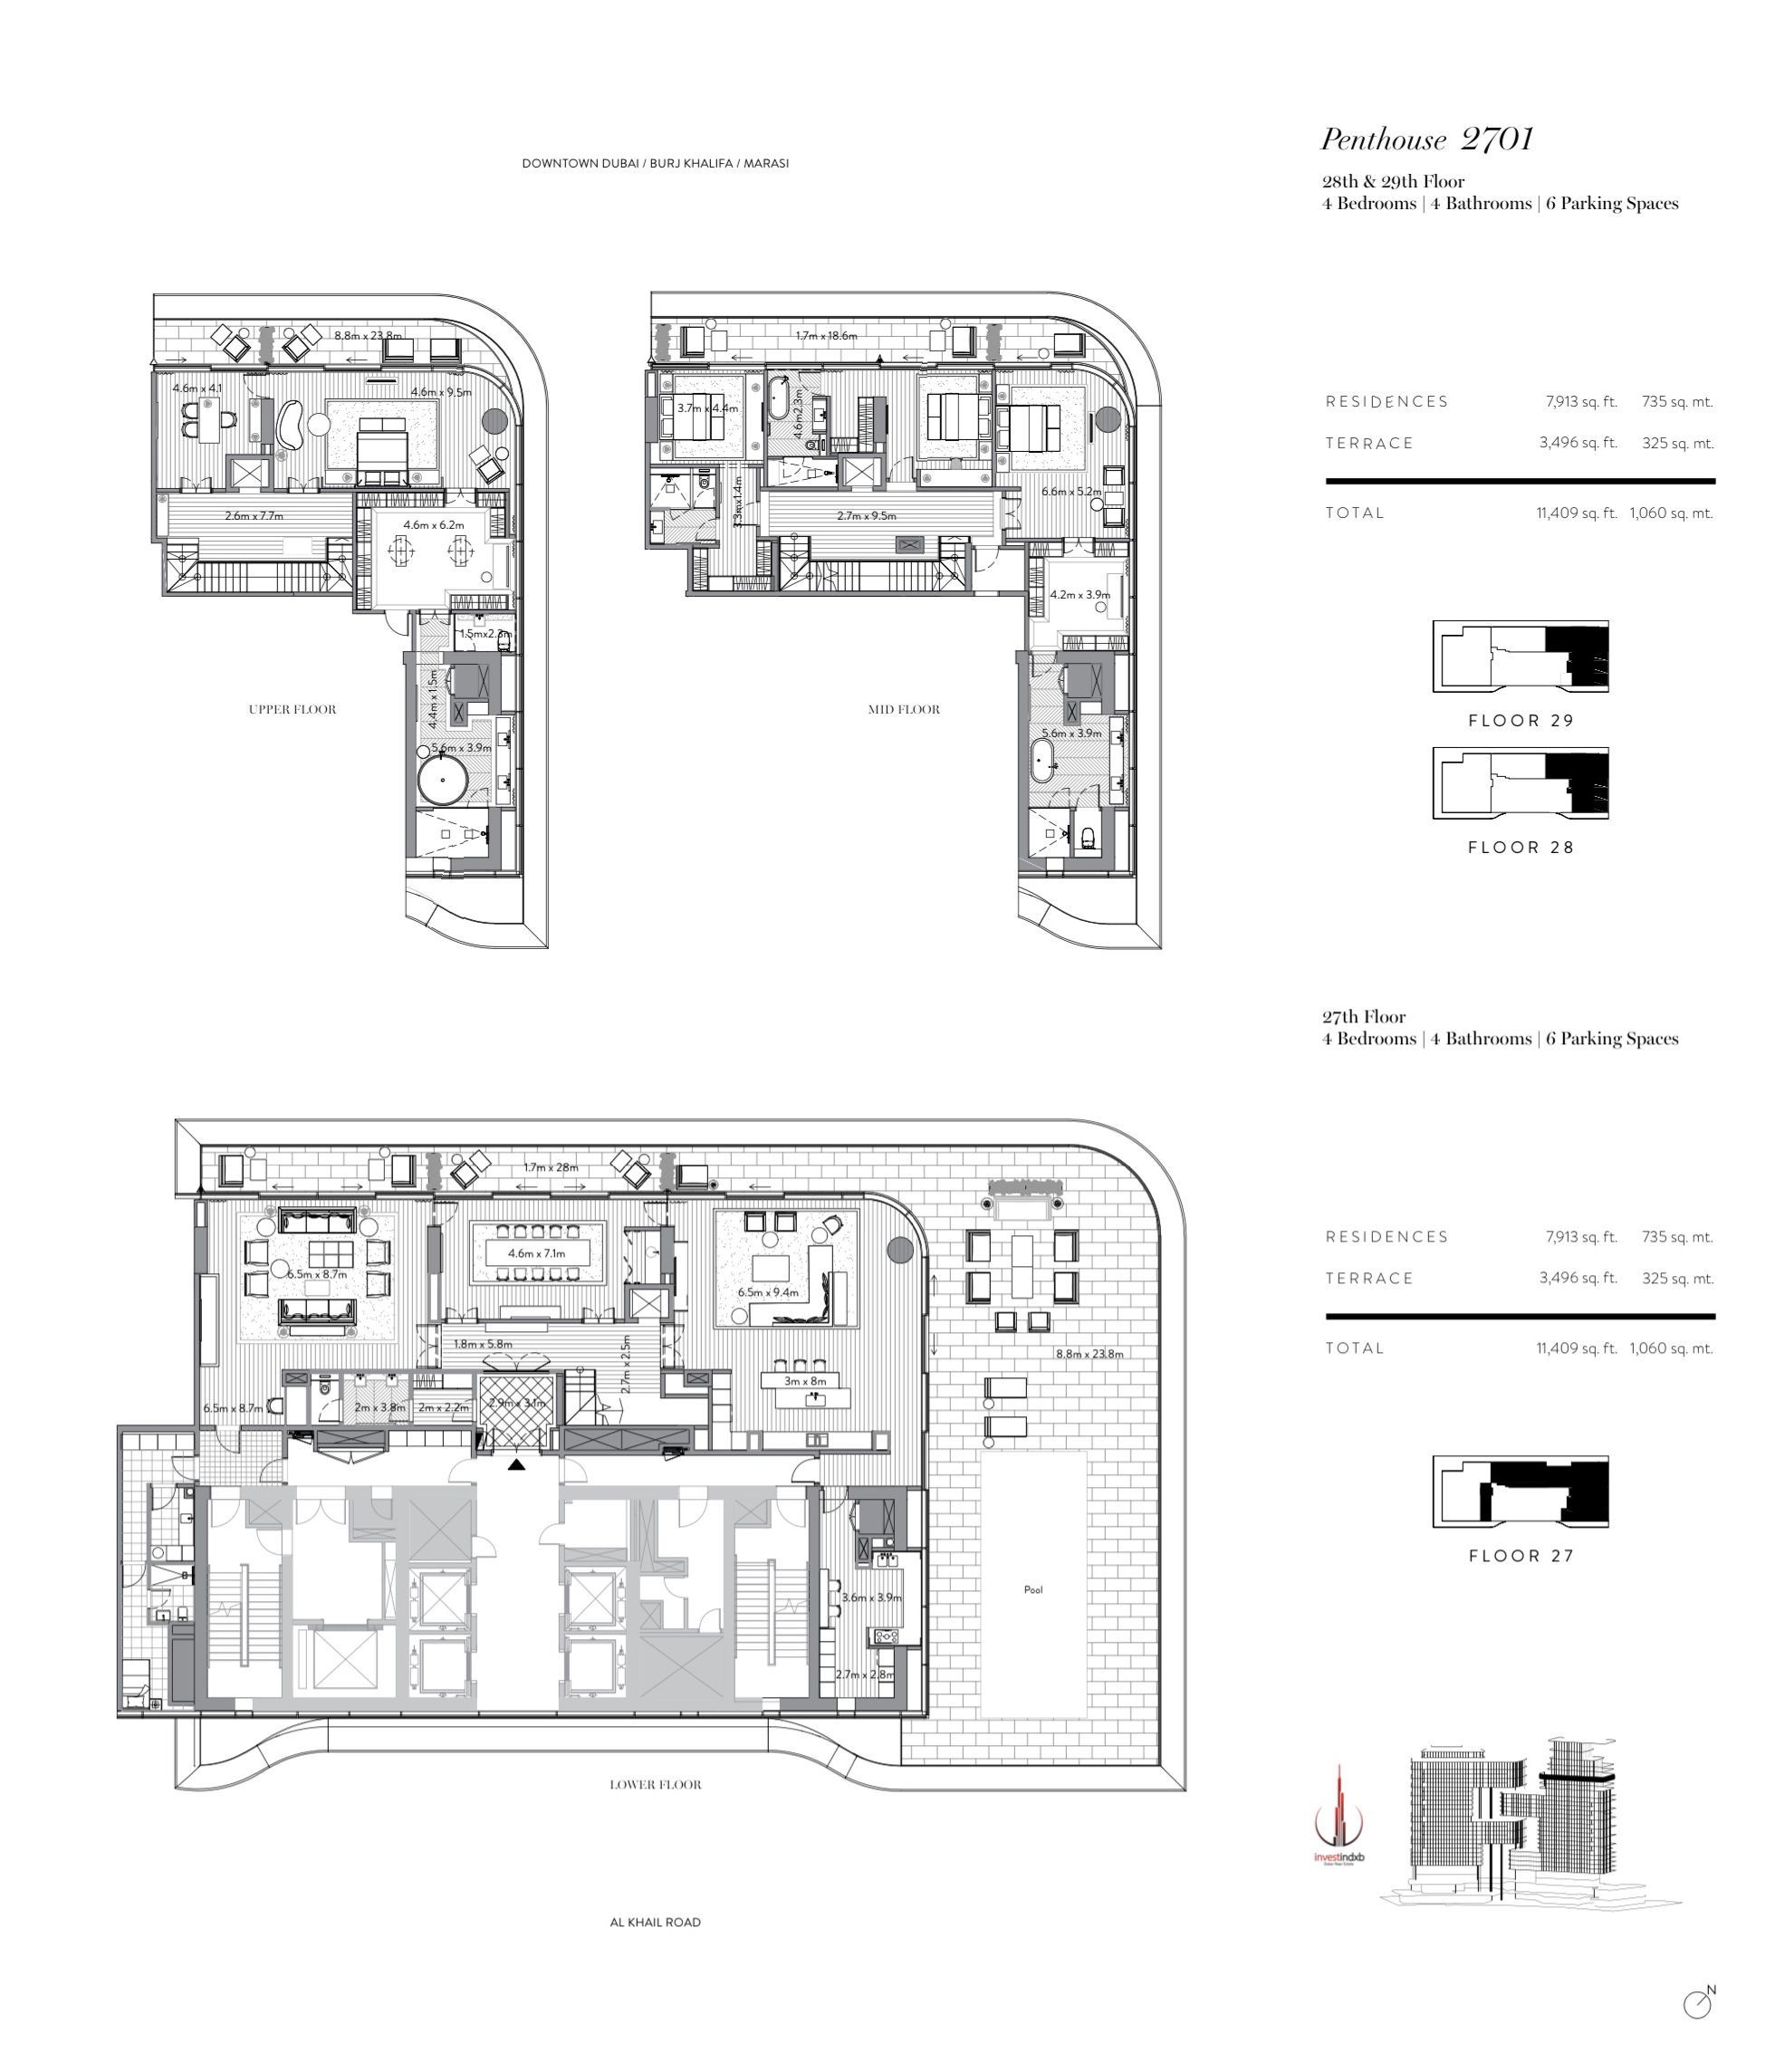 Pin By Todd Carney On Ultimate Penthouse Floor Plans In 2020 Floor Plans House Plans Design